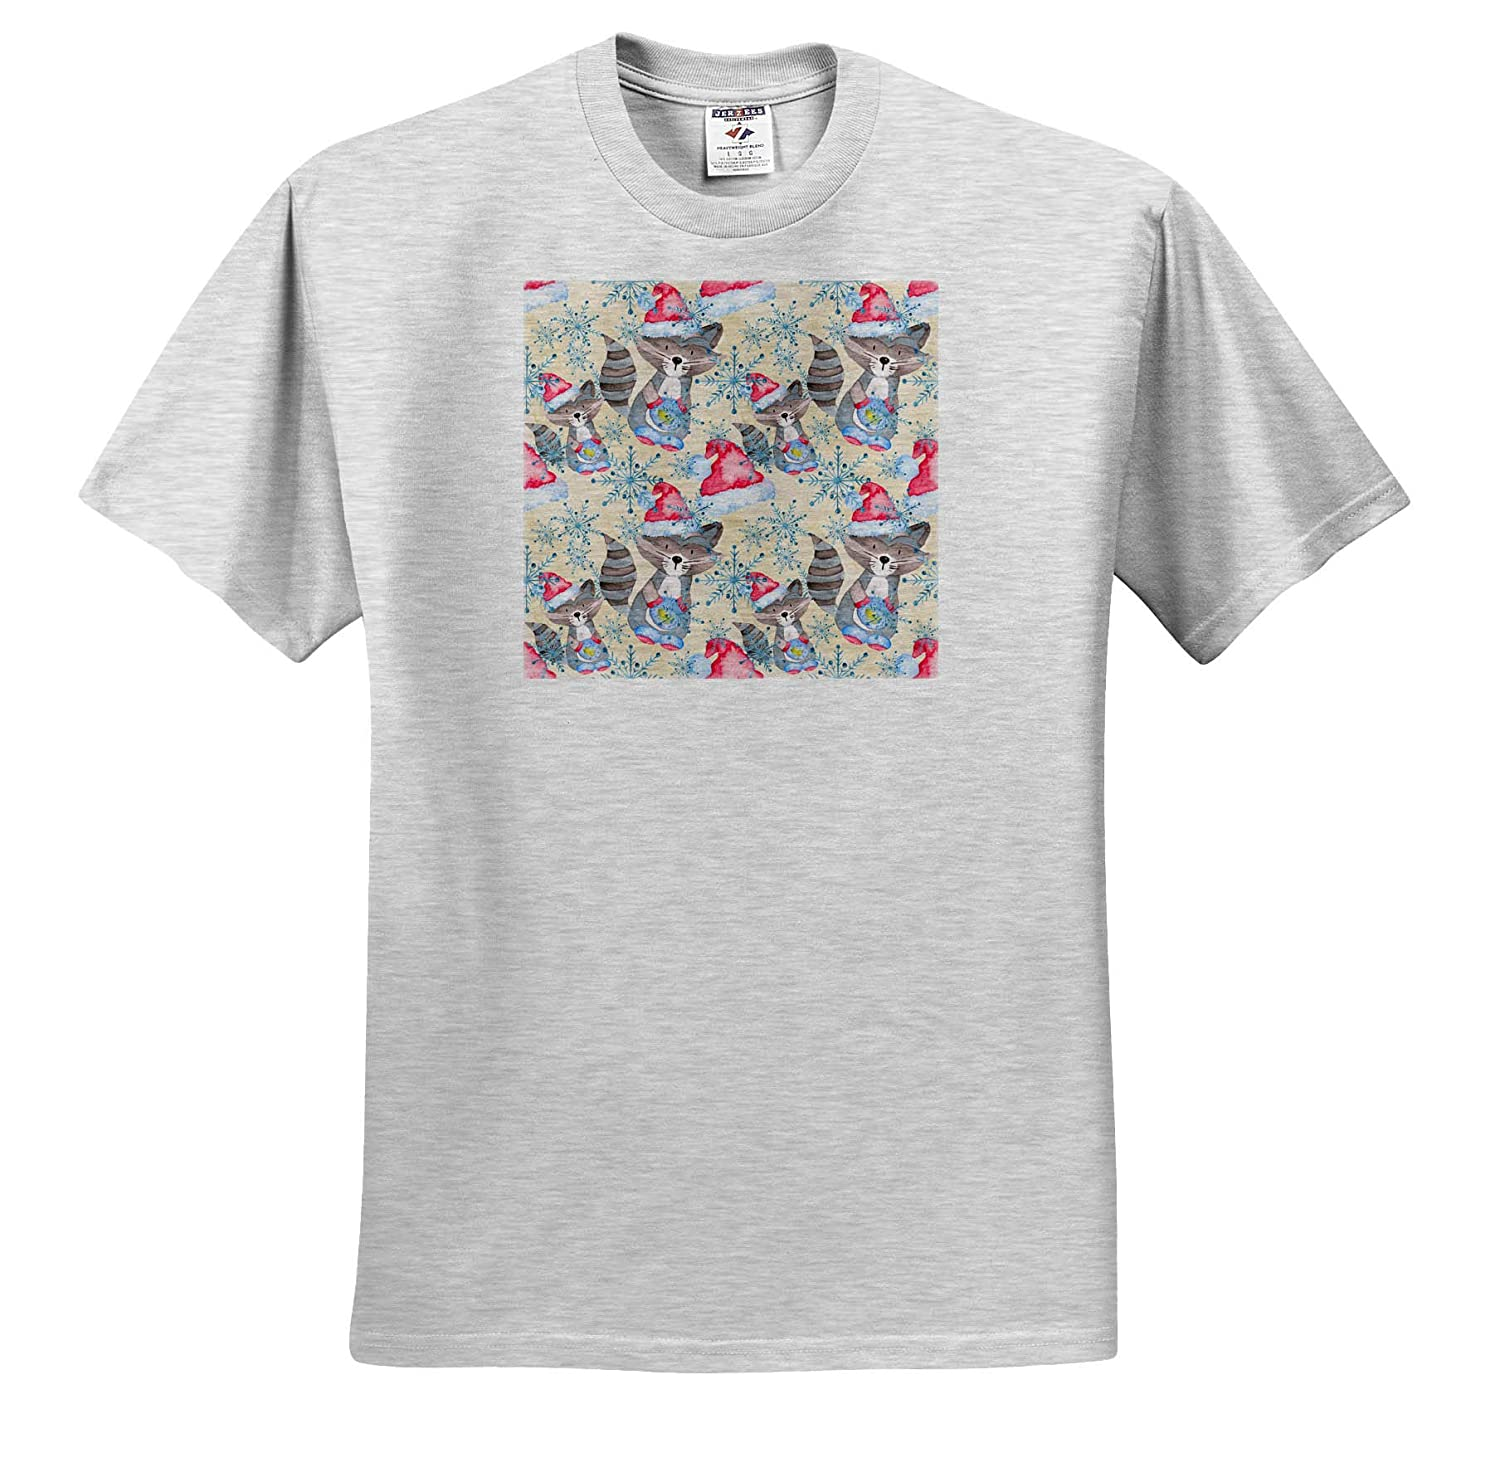 3dRose Anne Marie Baugh ts/_318539 Cute Image of Watercolor Winter Racoon Pattern Adult T-Shirt XL Christmas